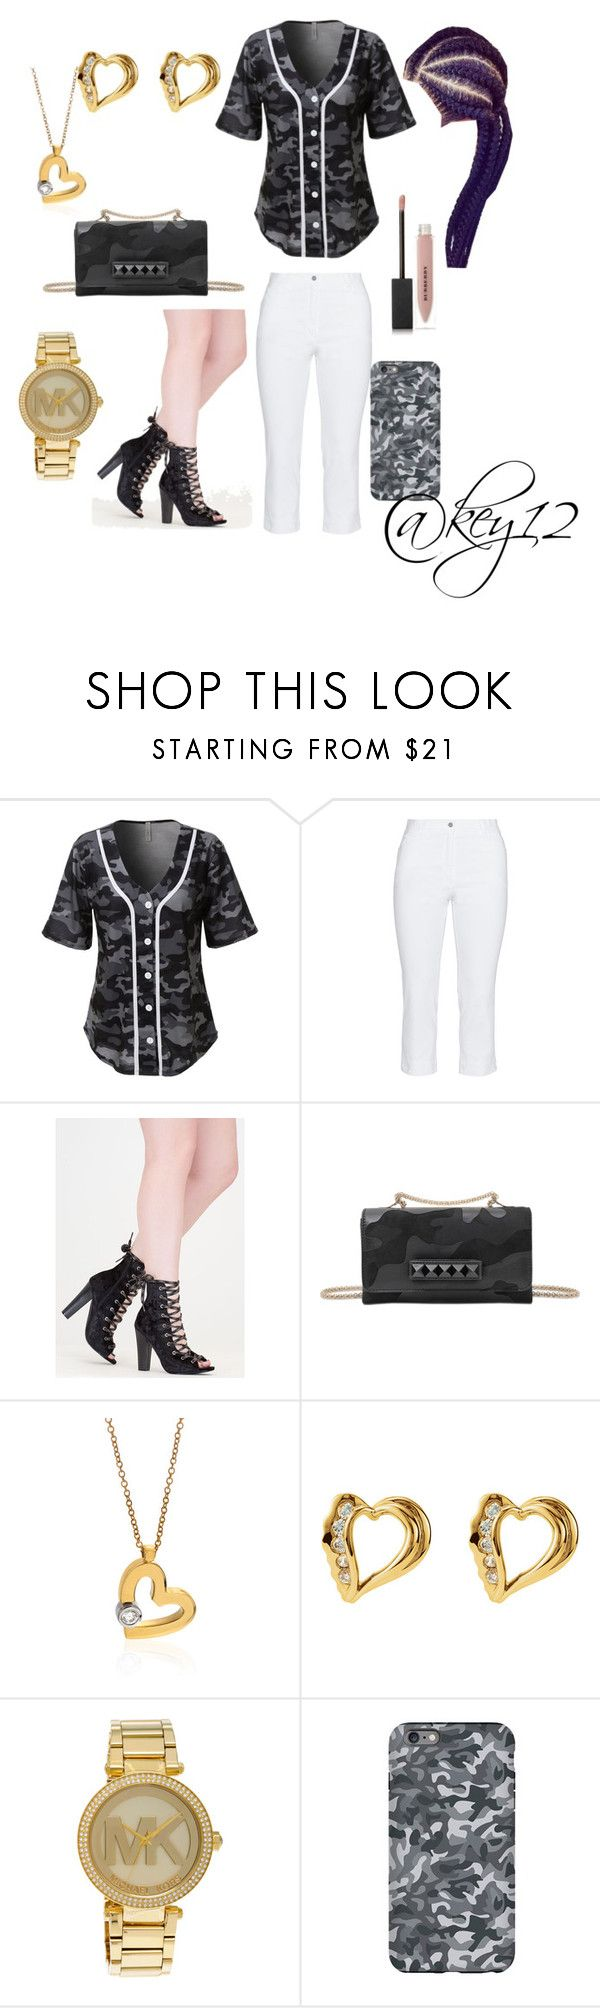 """When you sexy with Camo"" by key12 ❤ liked on Polyvore featuring LE3NO, KJ Brand, Valentino, Roberto Coin, Michael Kors, Burberry and Ultimate"